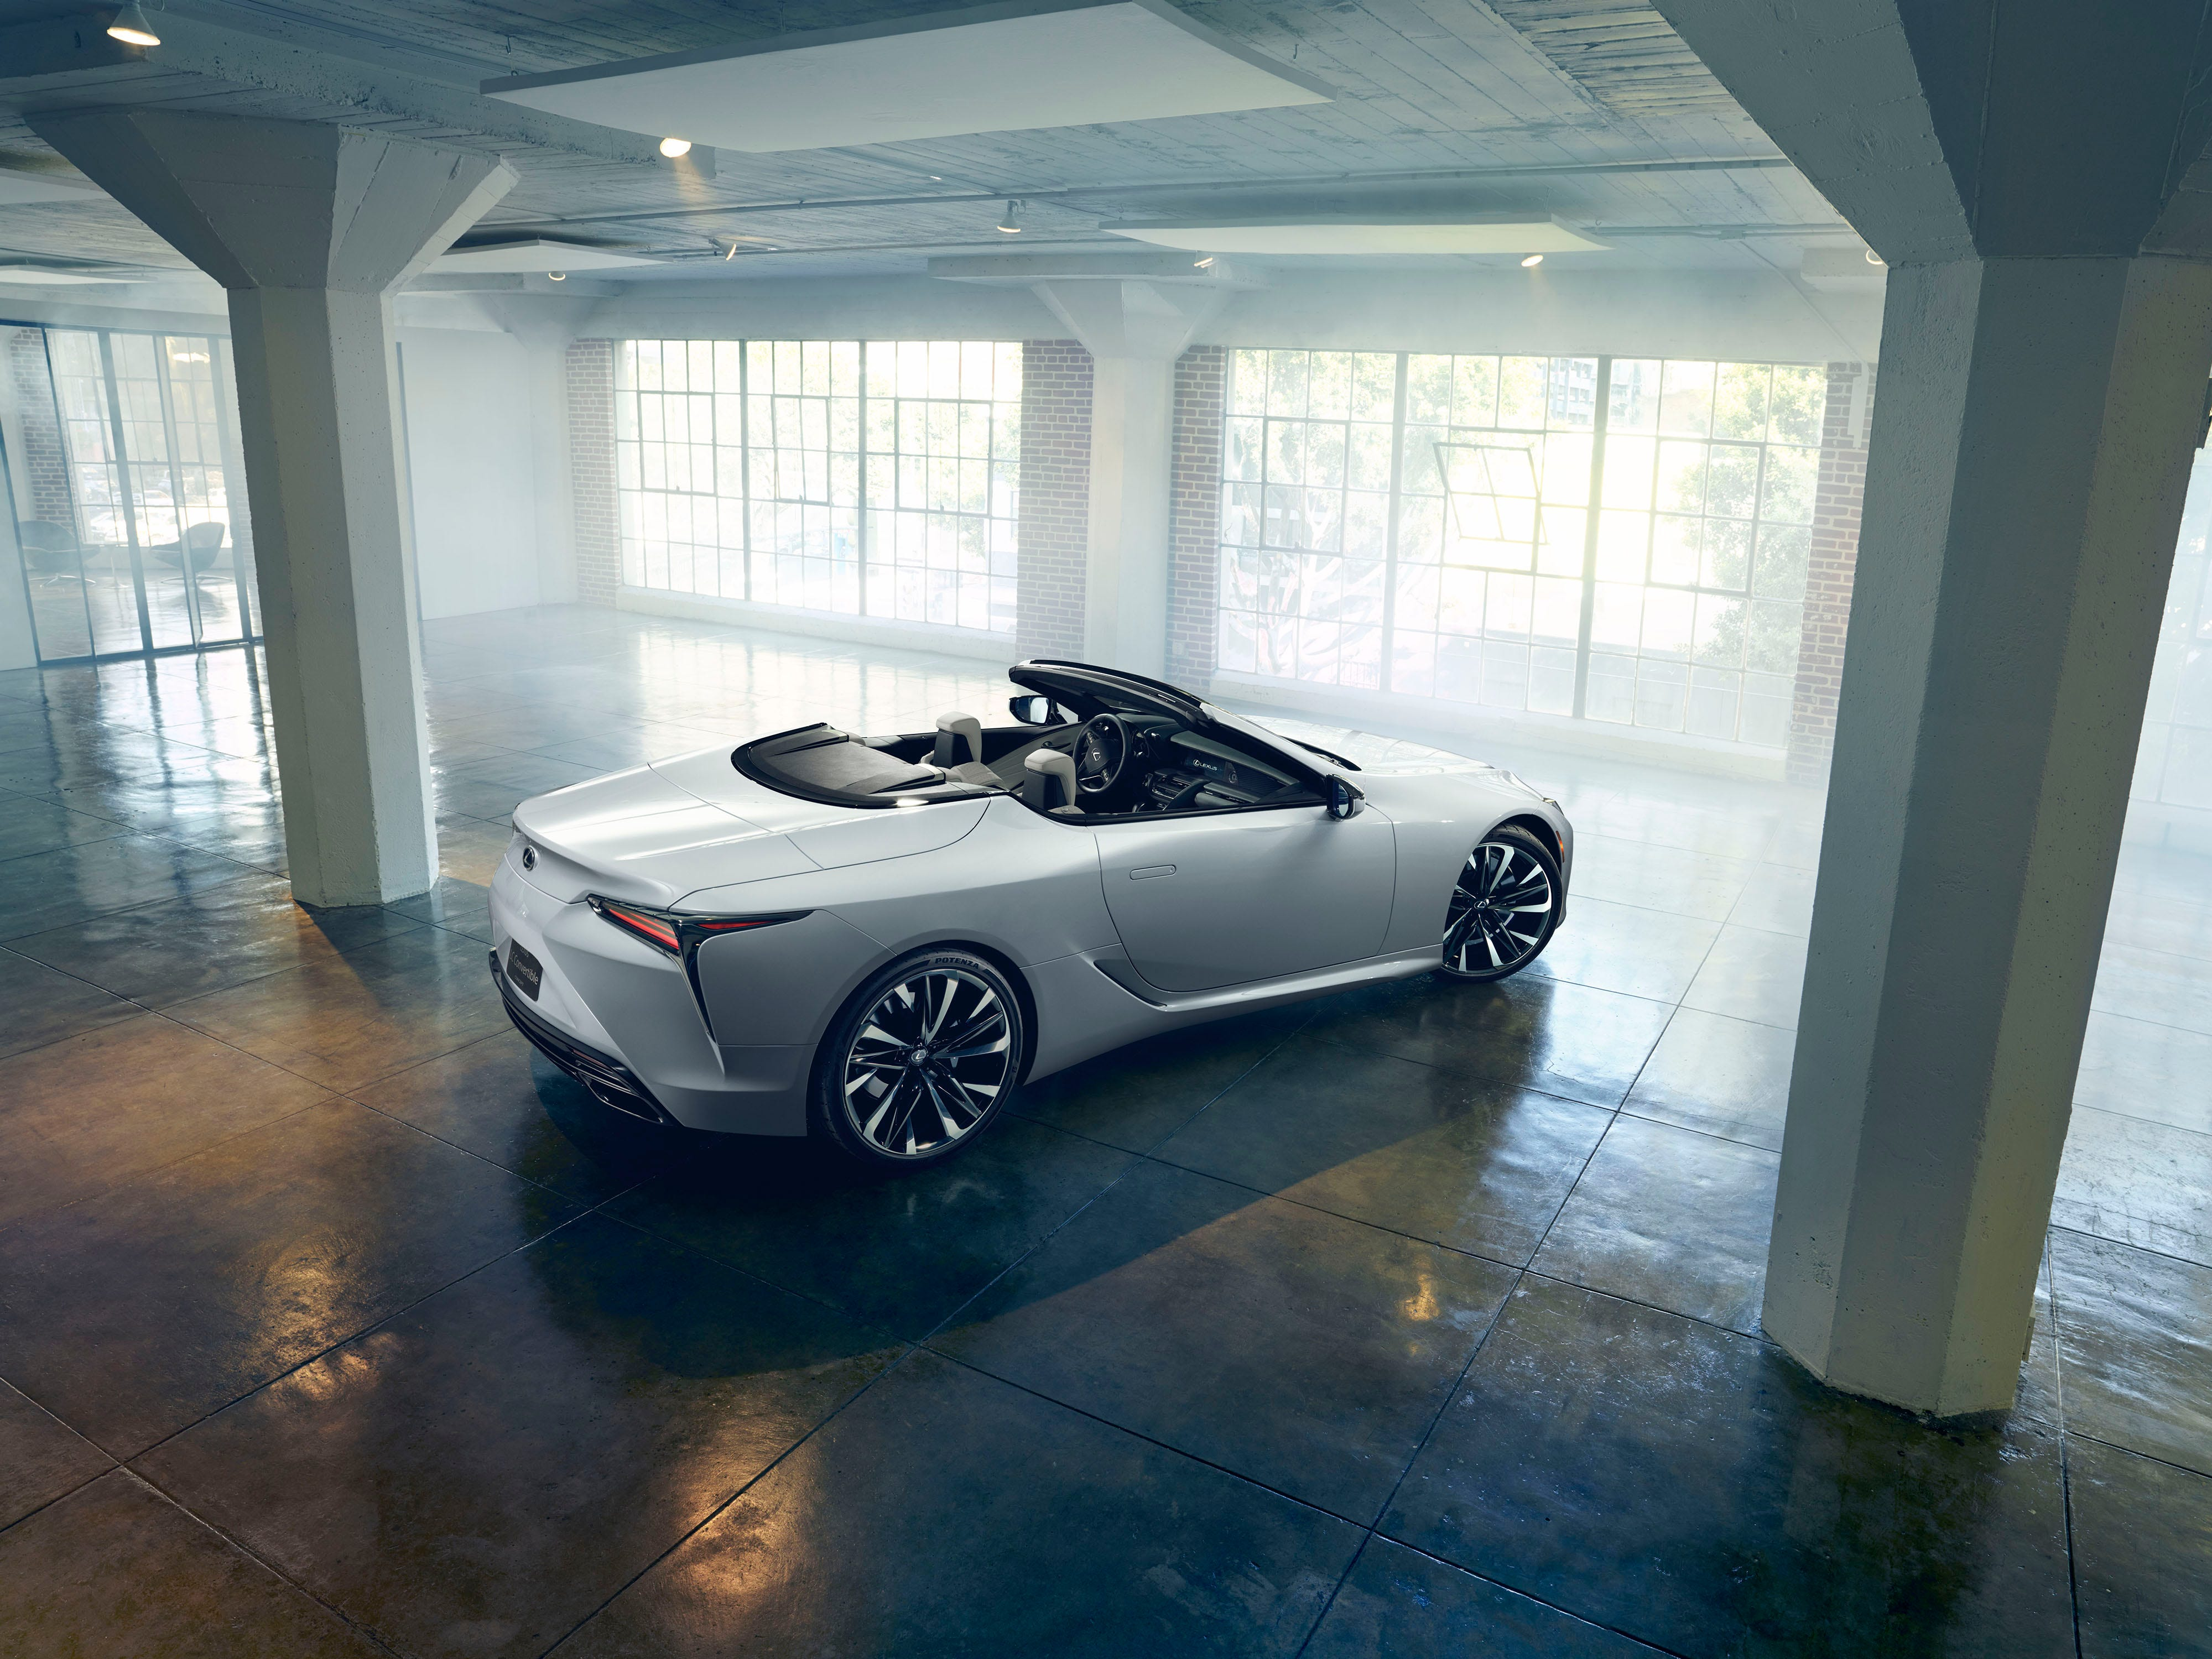 The Lexus LC Convertible Concept will make its debut at the 2019 North American International Auto Show.